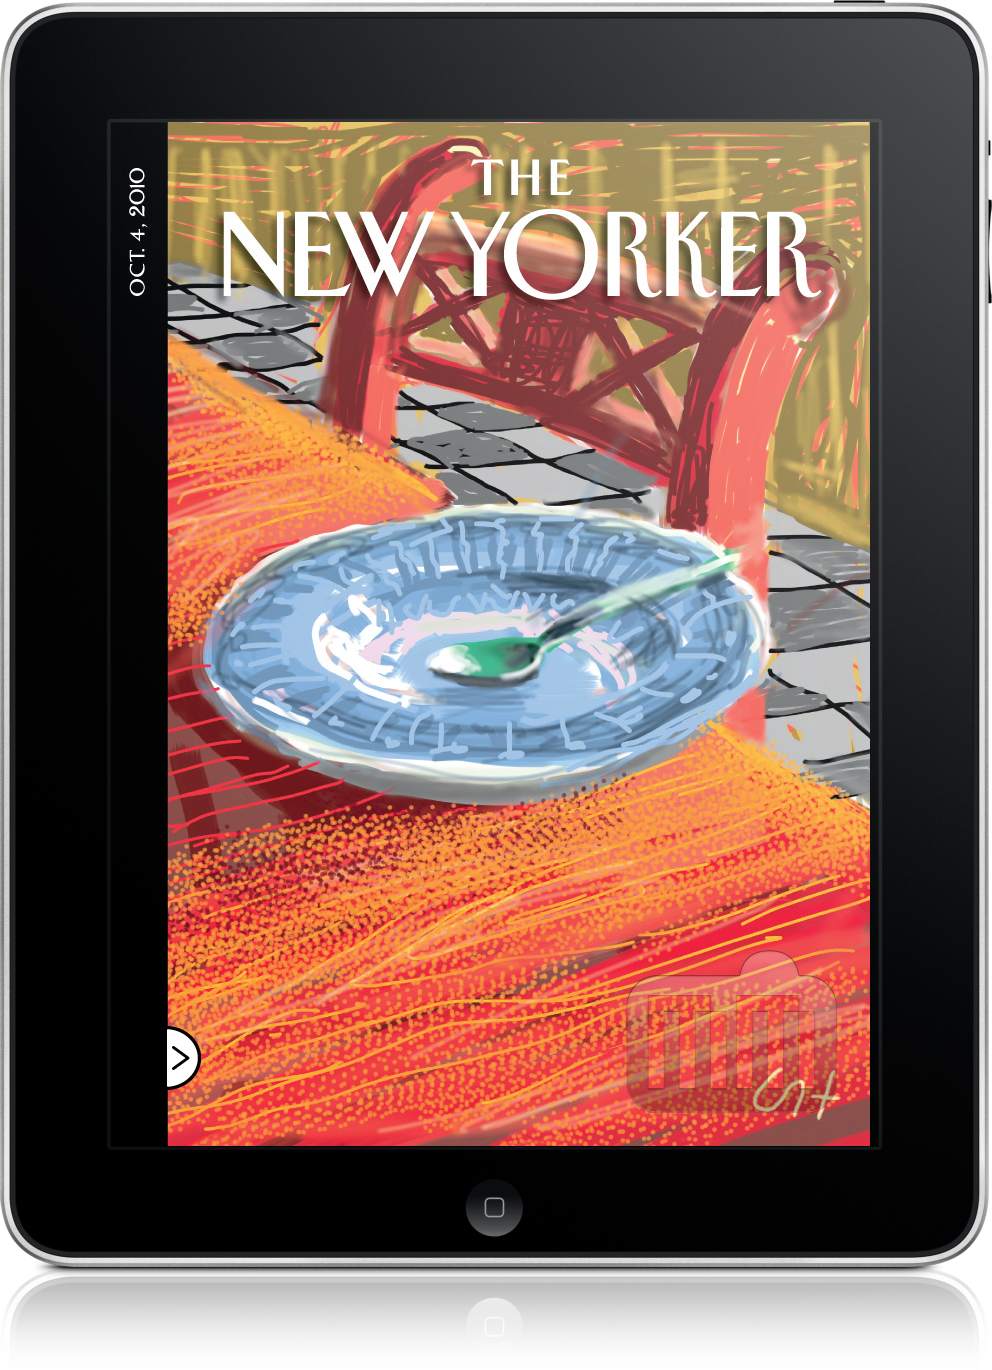 New Yorker no iPad